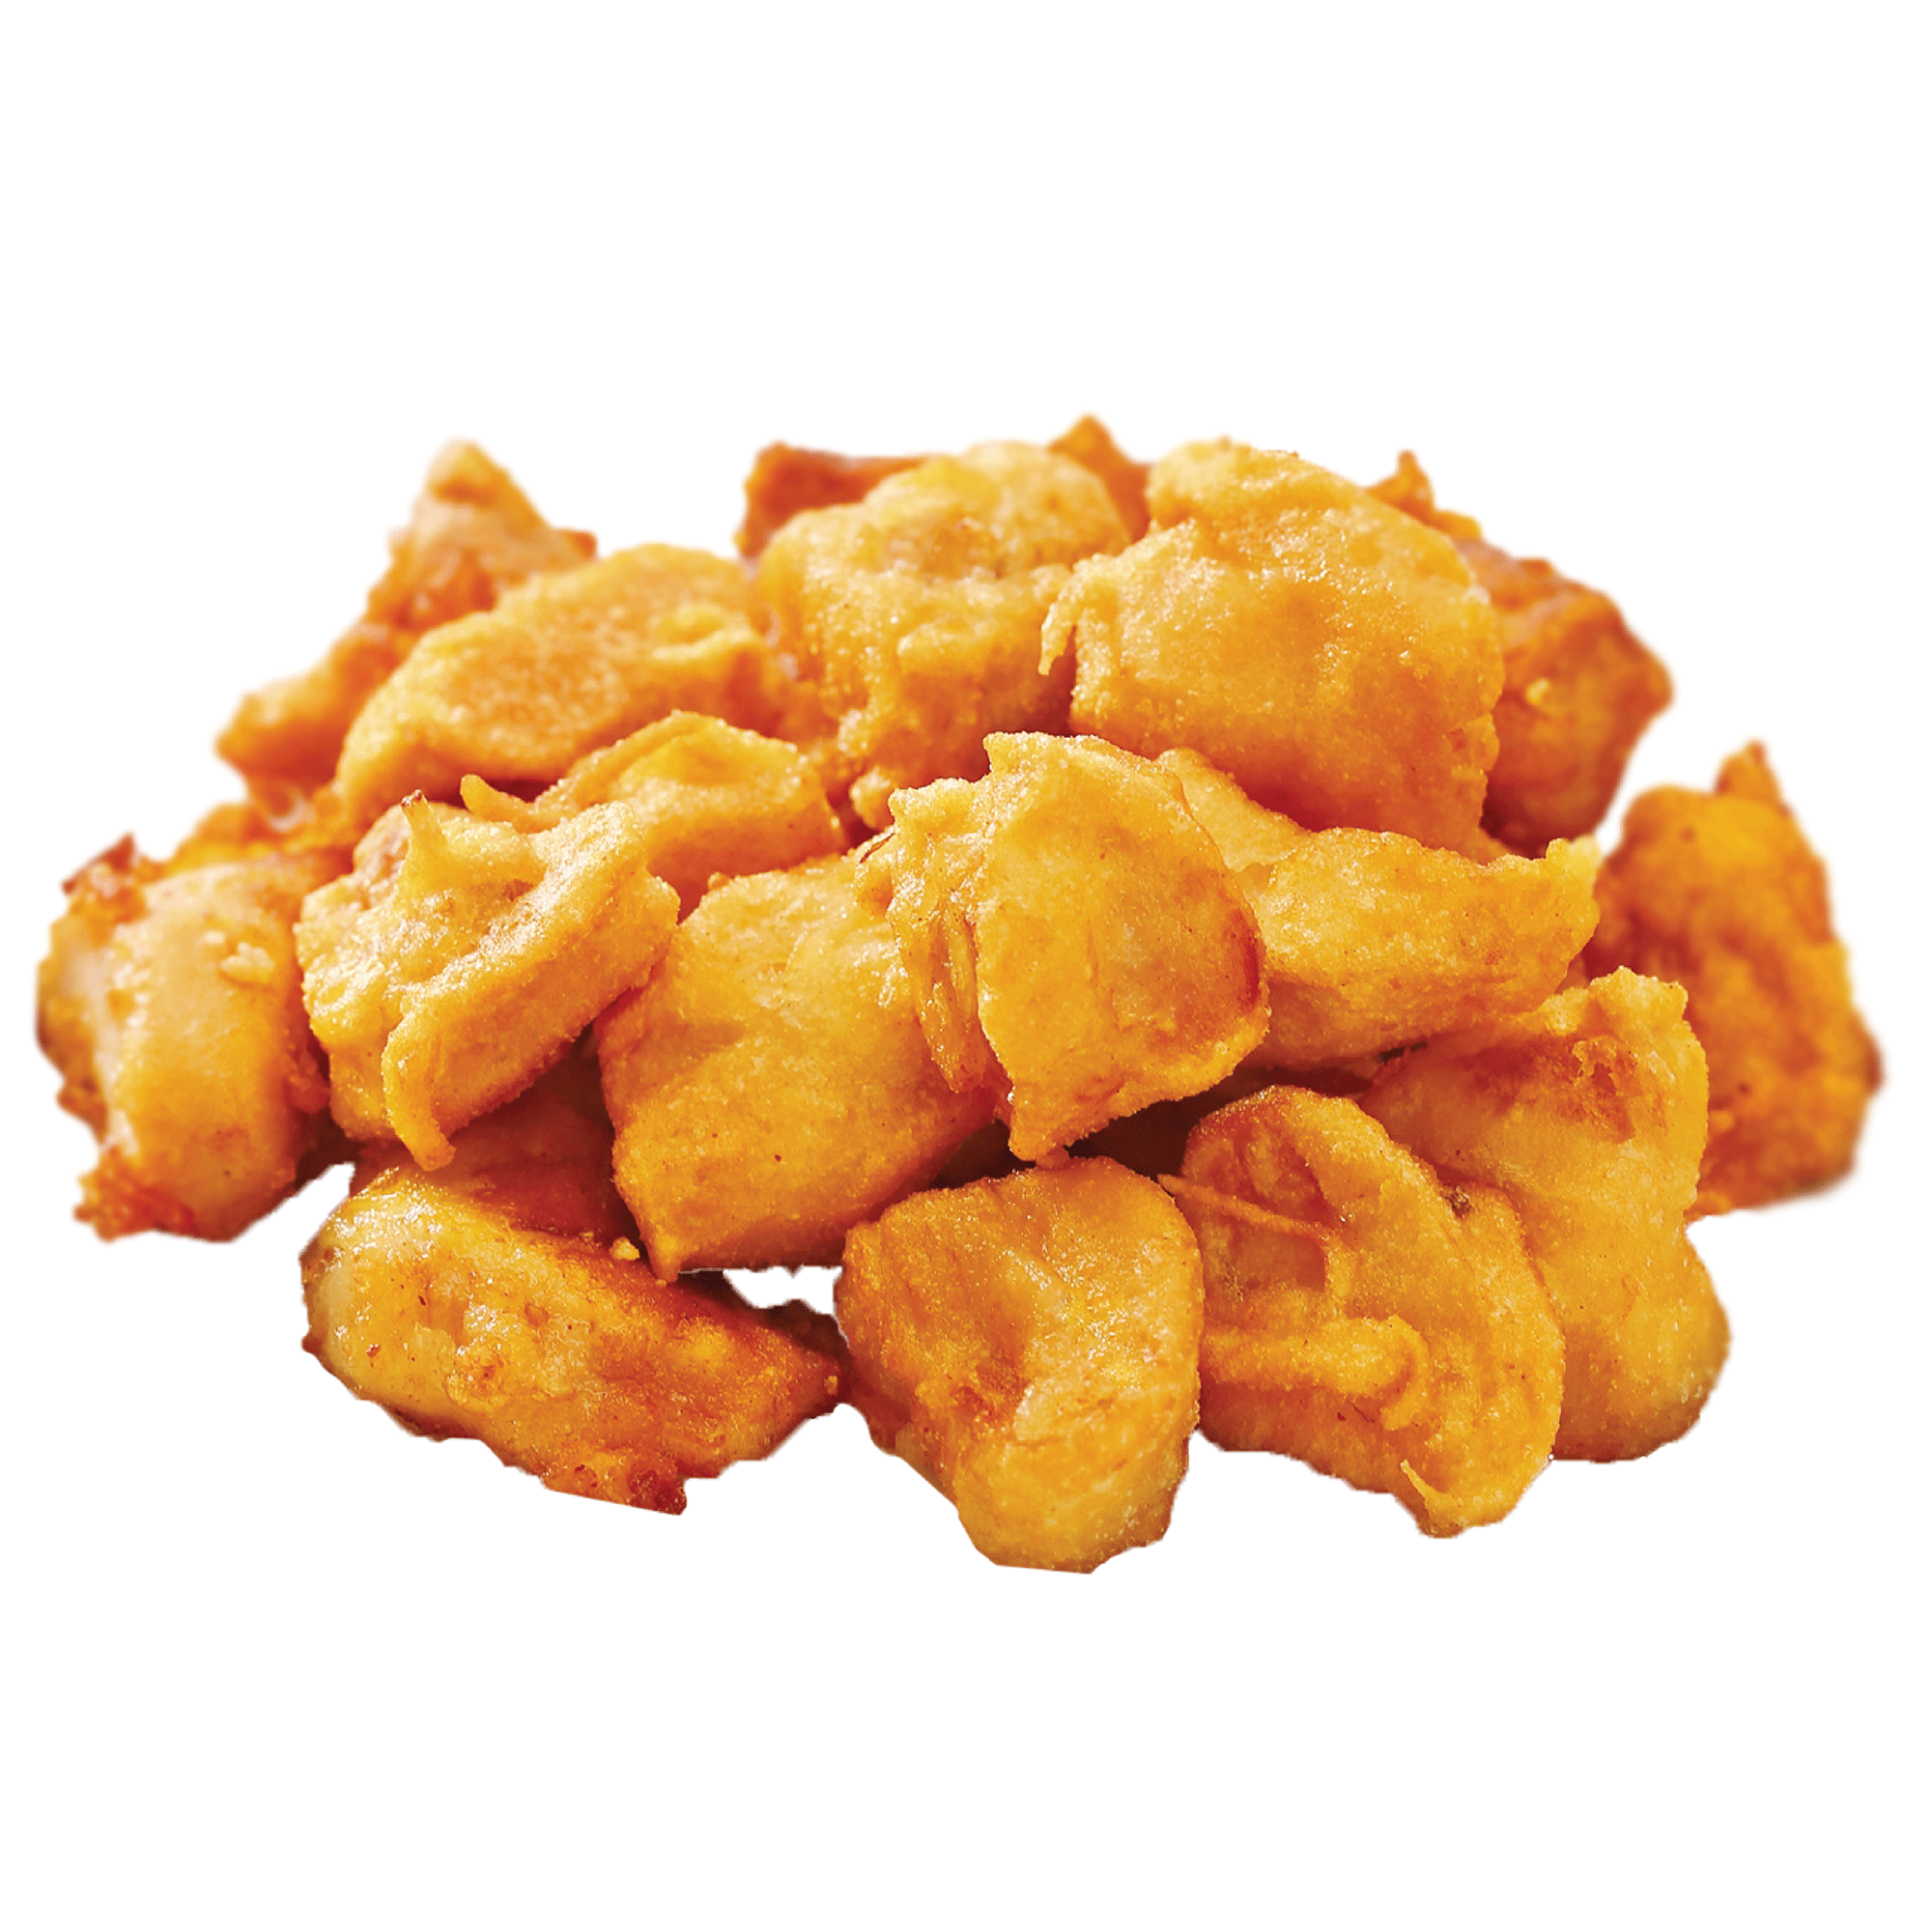 Fried King Oyster Mushroom